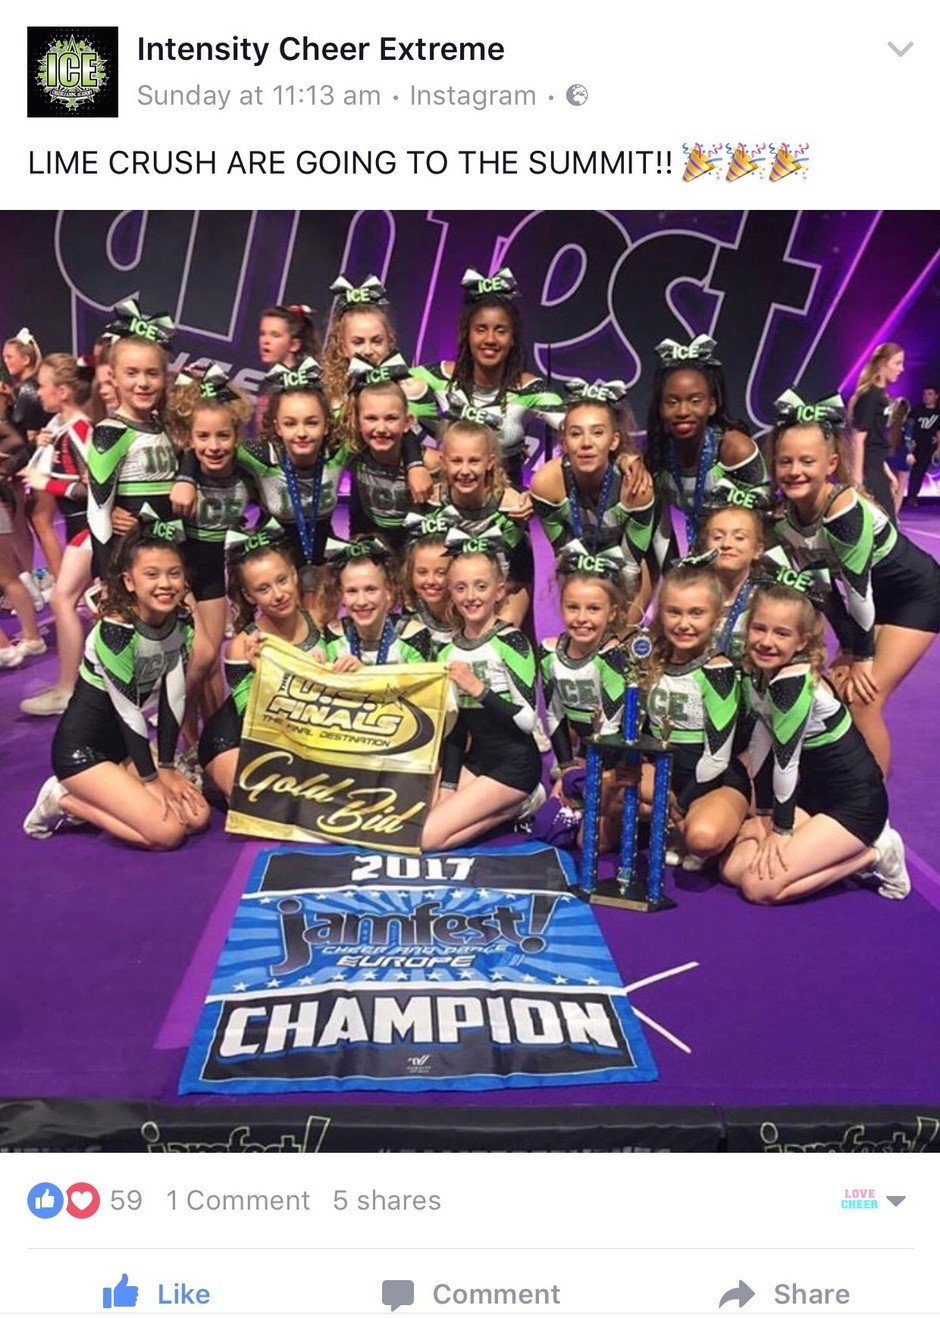 Lime Crush with their 1st place and Bid